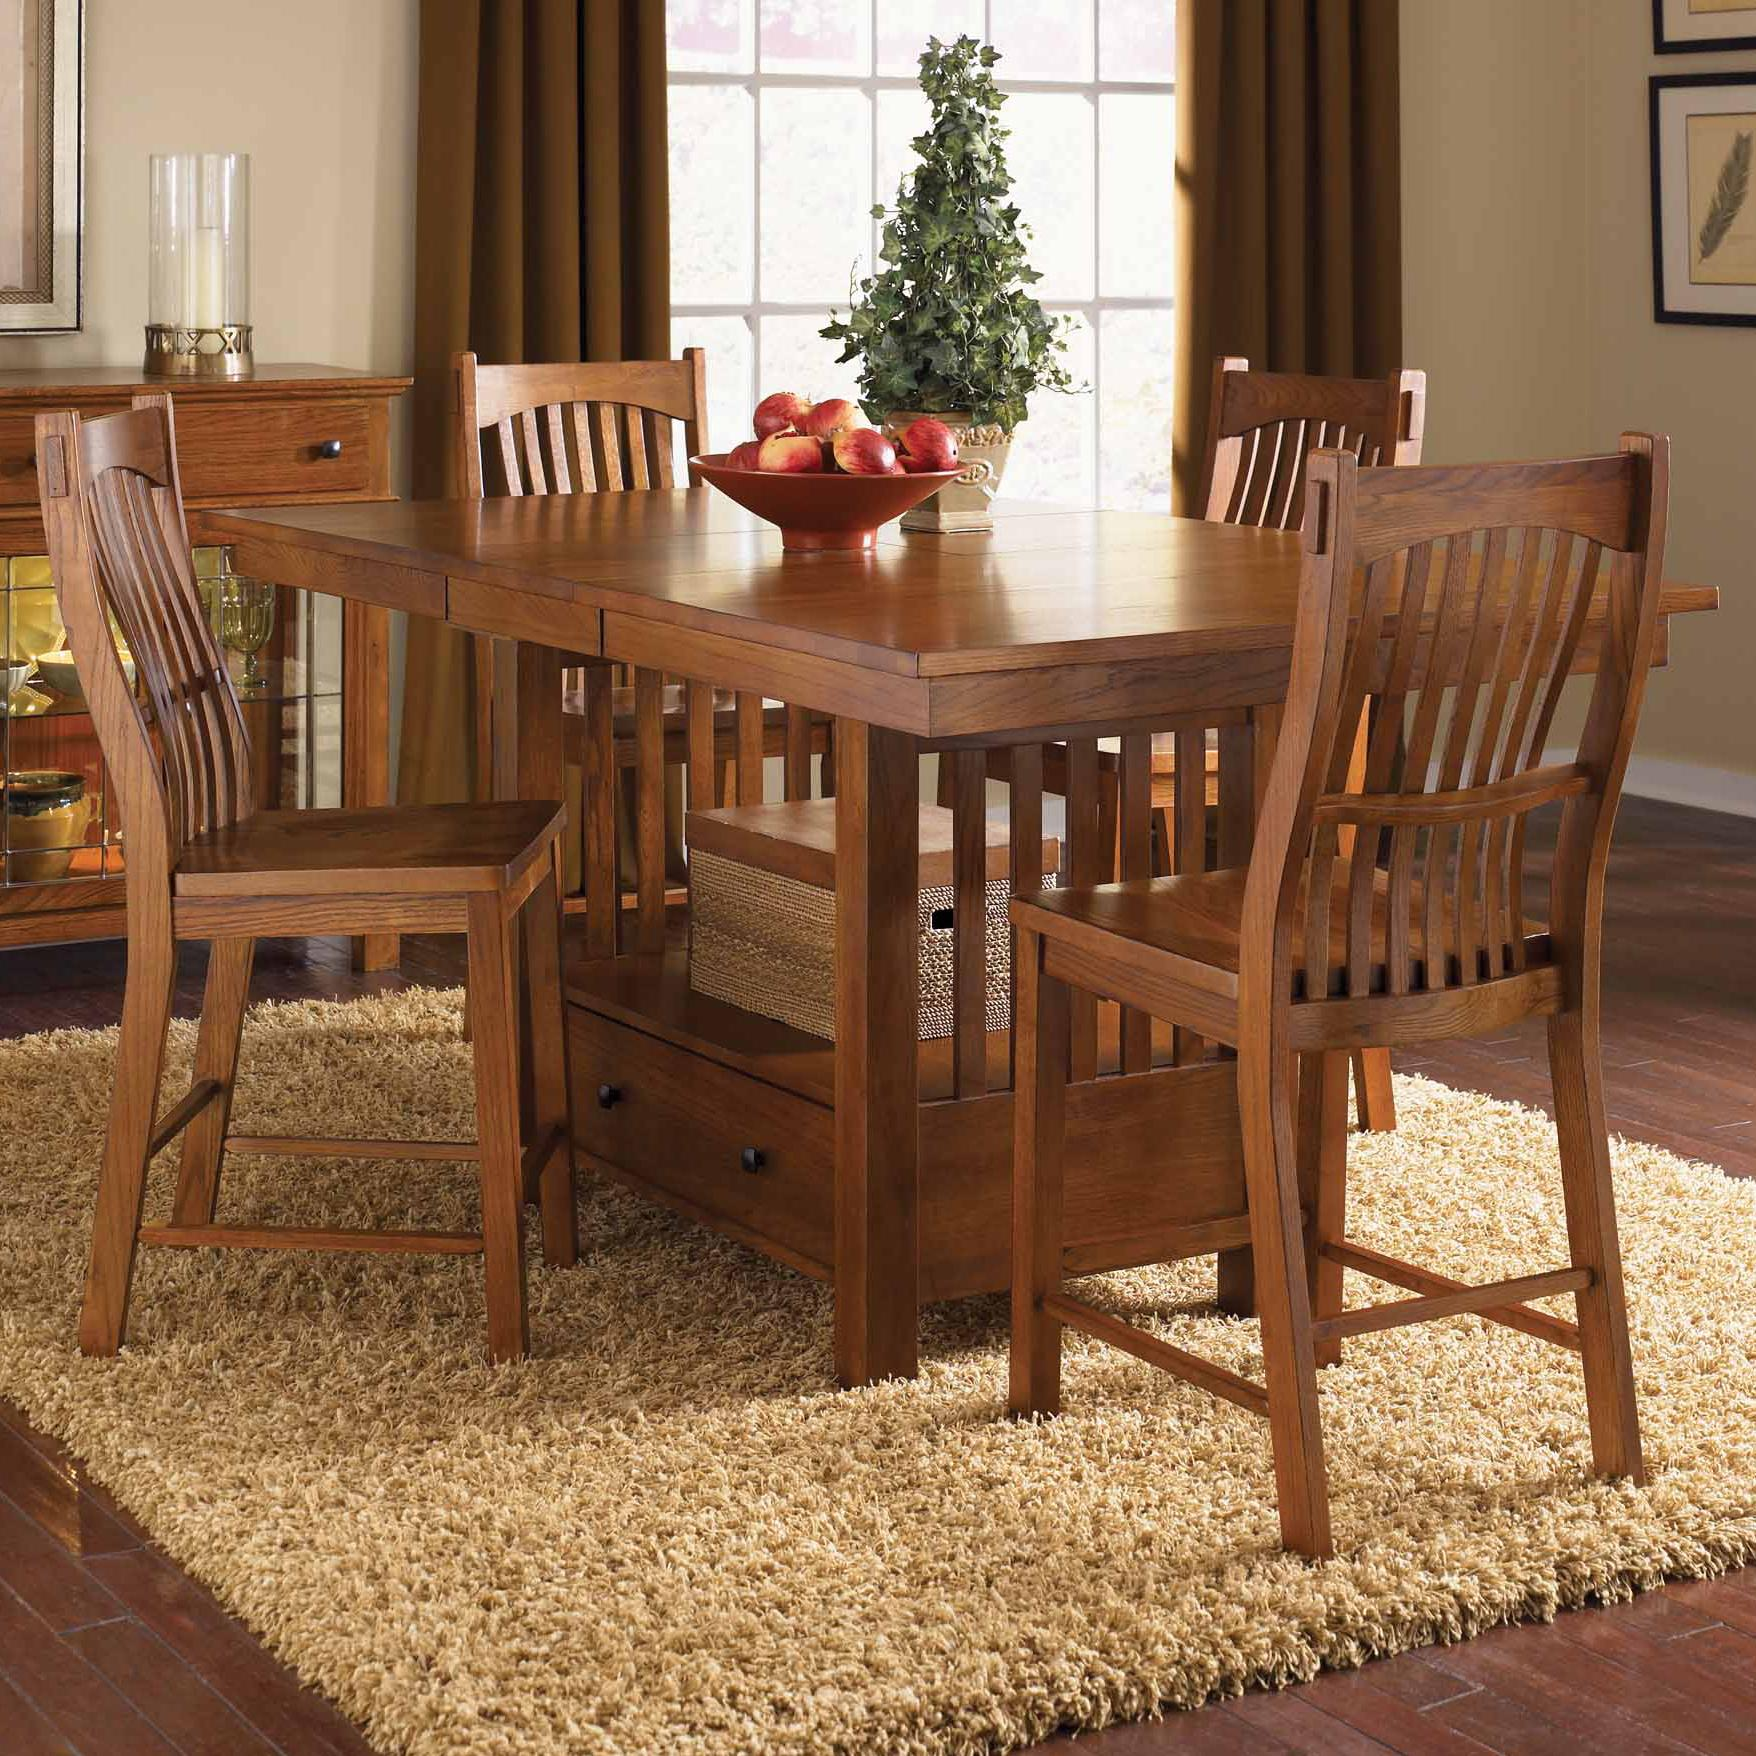 Laurelhurst 5-Piece Rect. Gathering Height Table Set by A-A at Walker's Furniture